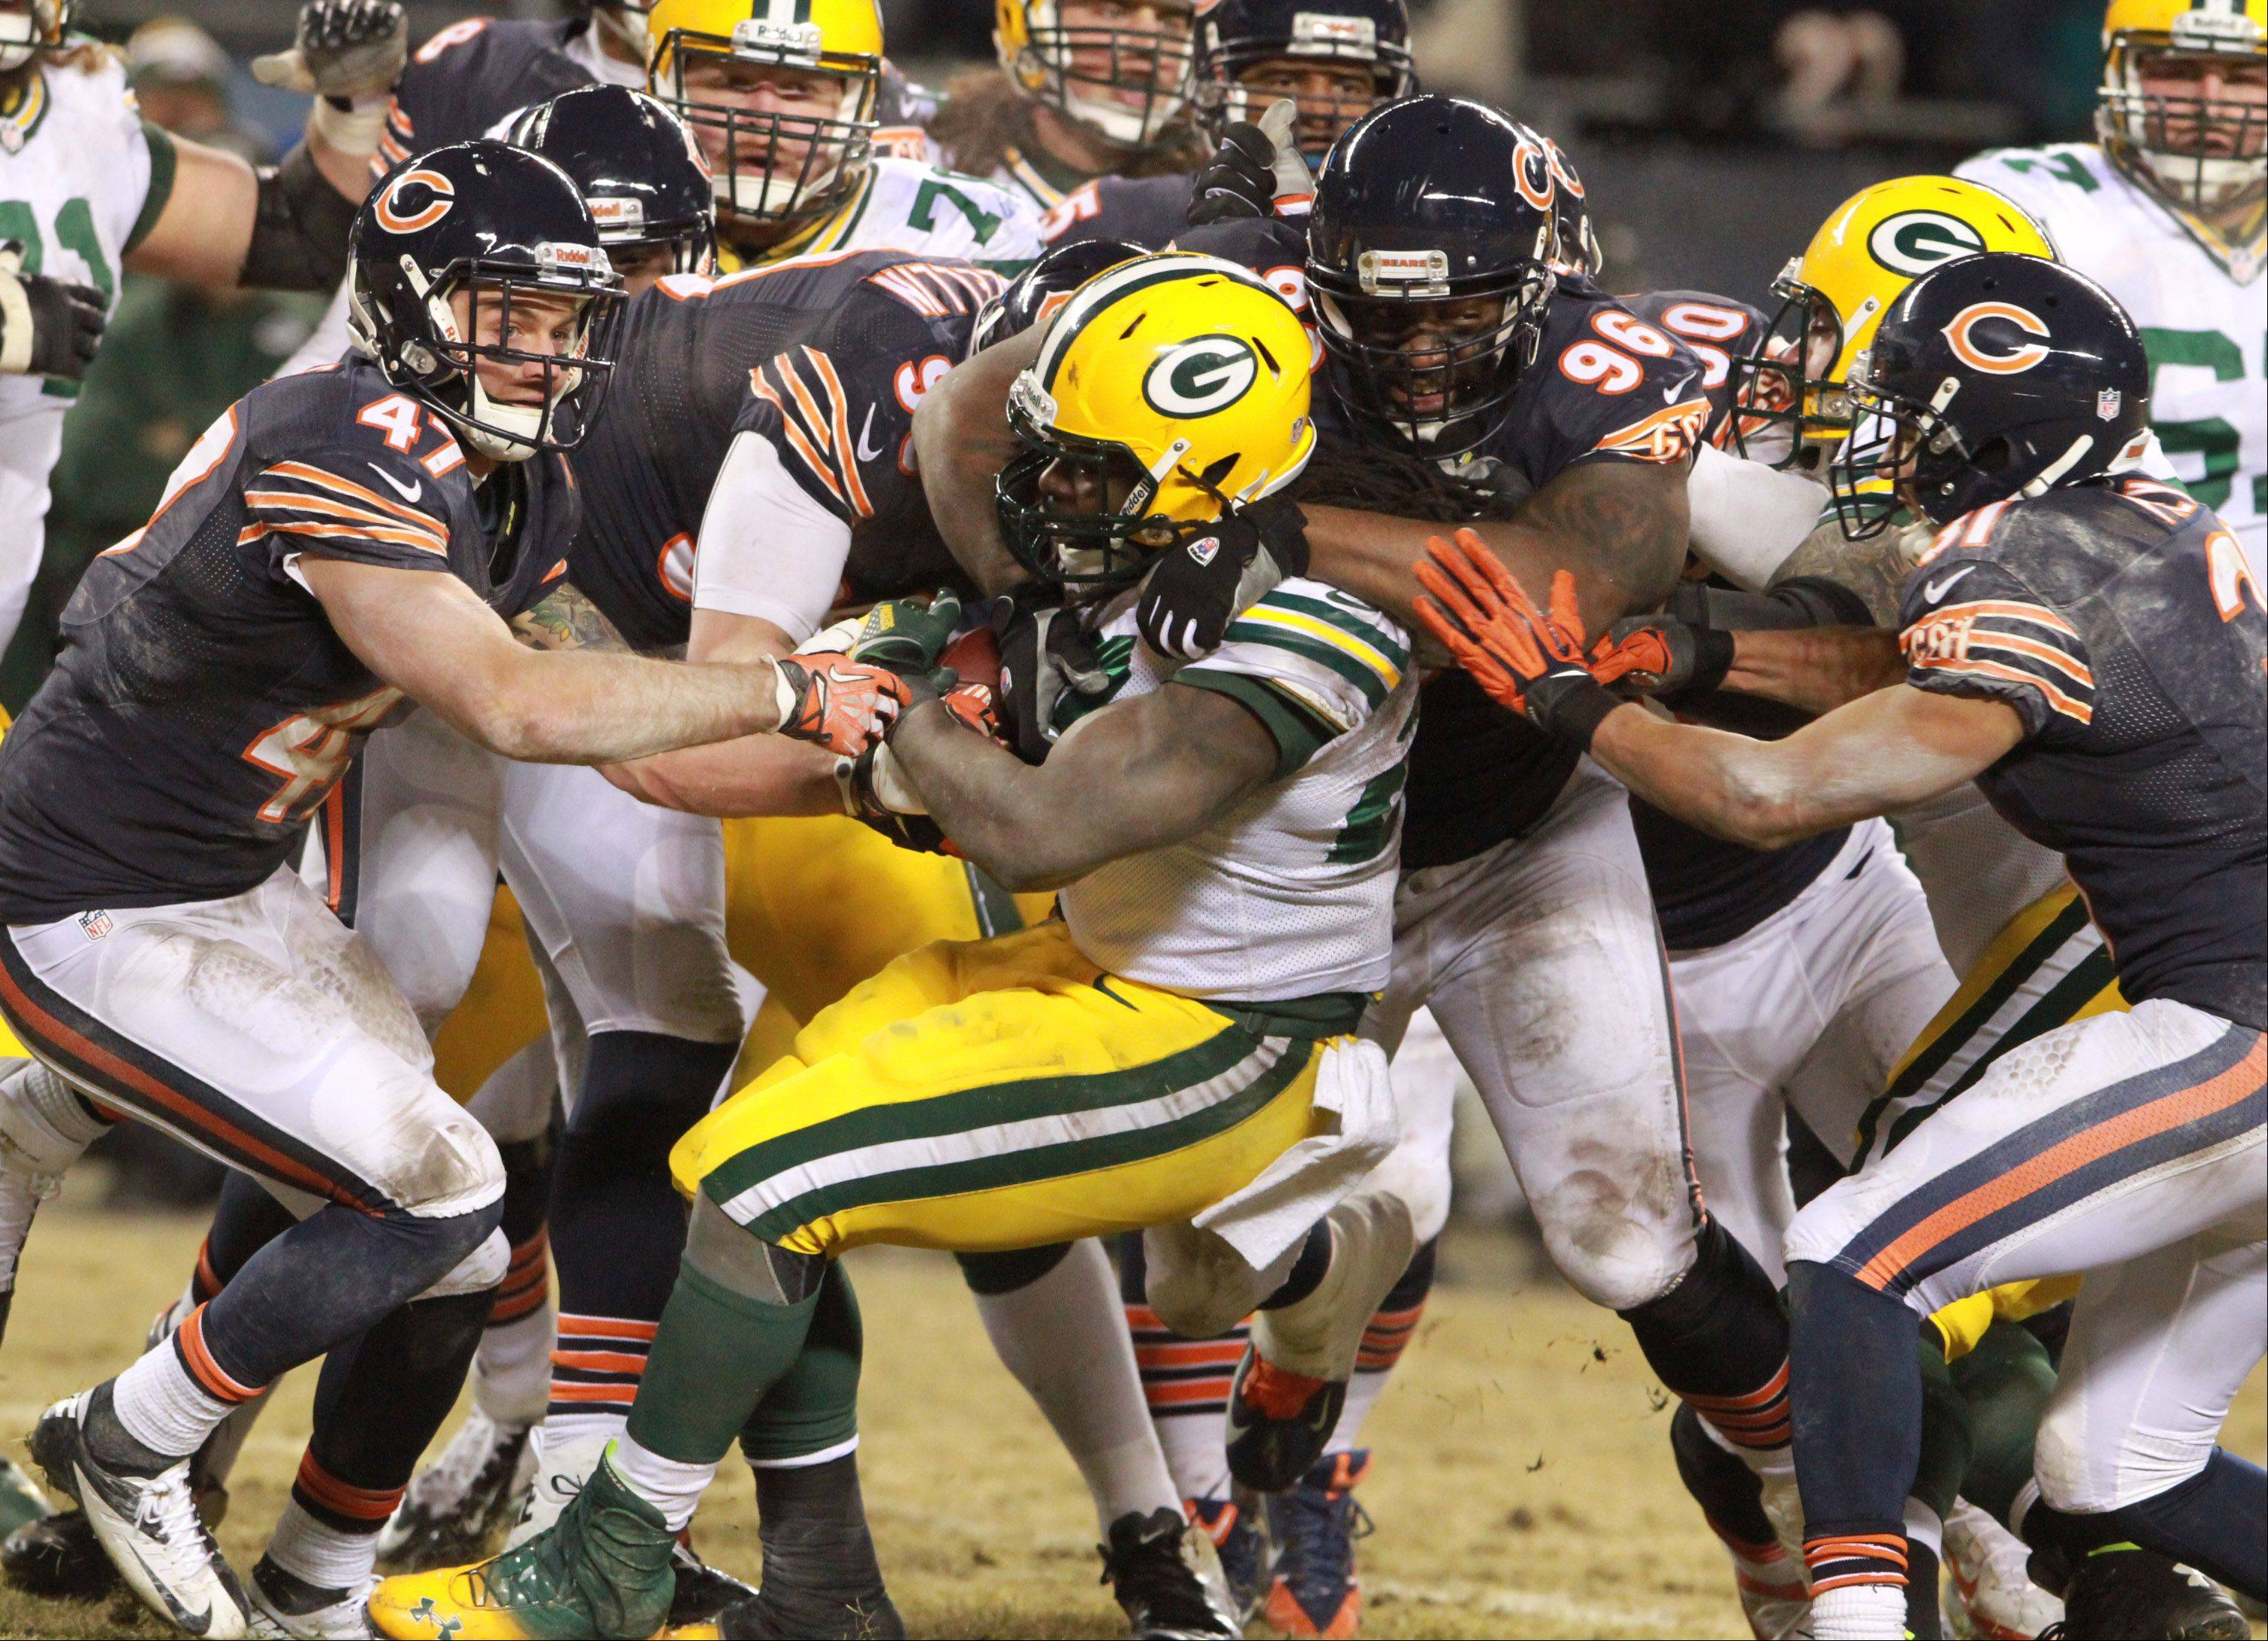 Packers running back Eddie Lacy attracts a swarm of Bears defenders Sunday at Soldier Field.